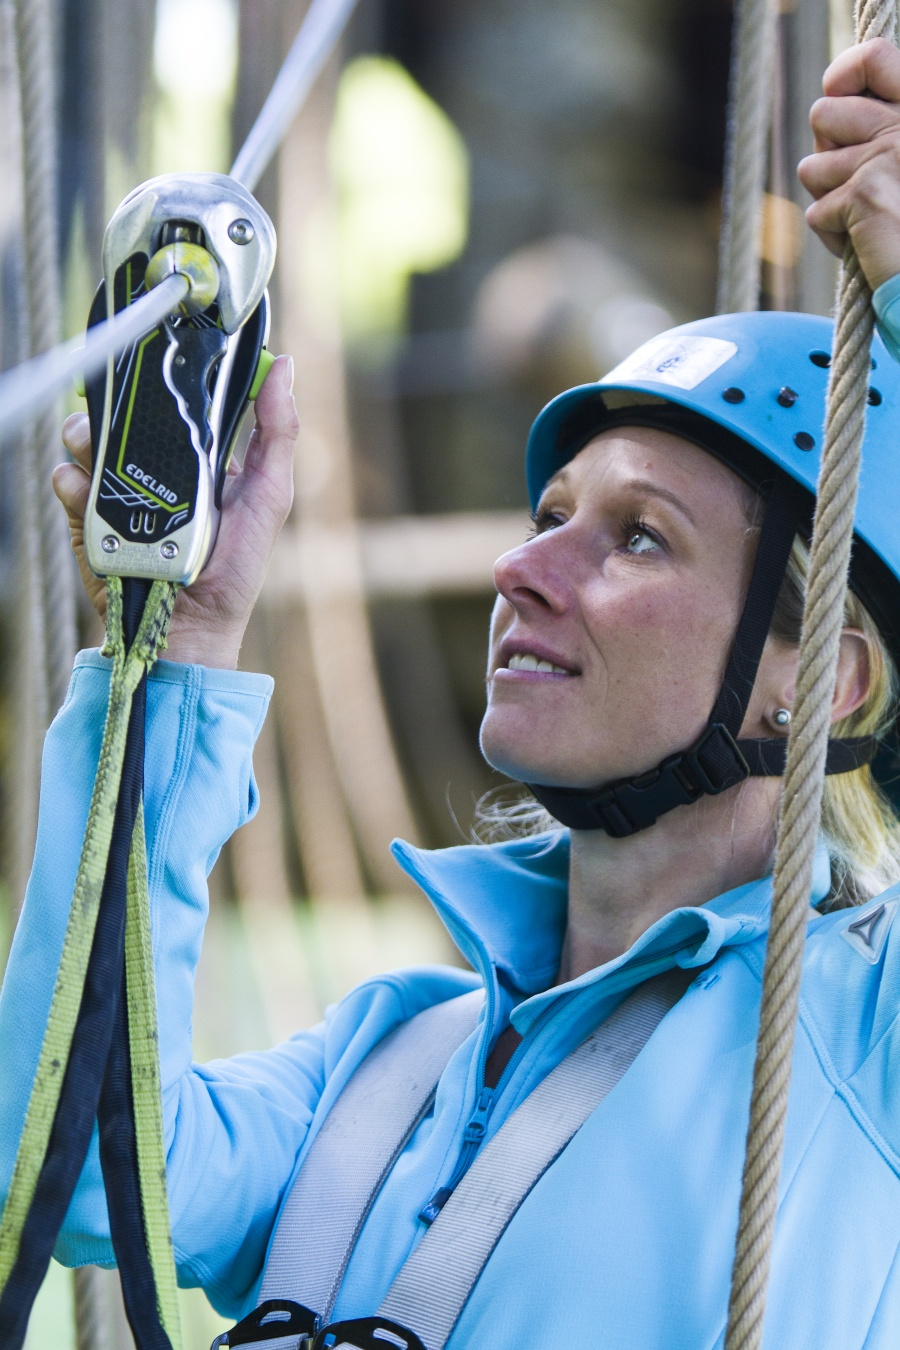 Sicherheit dank Smart Belay